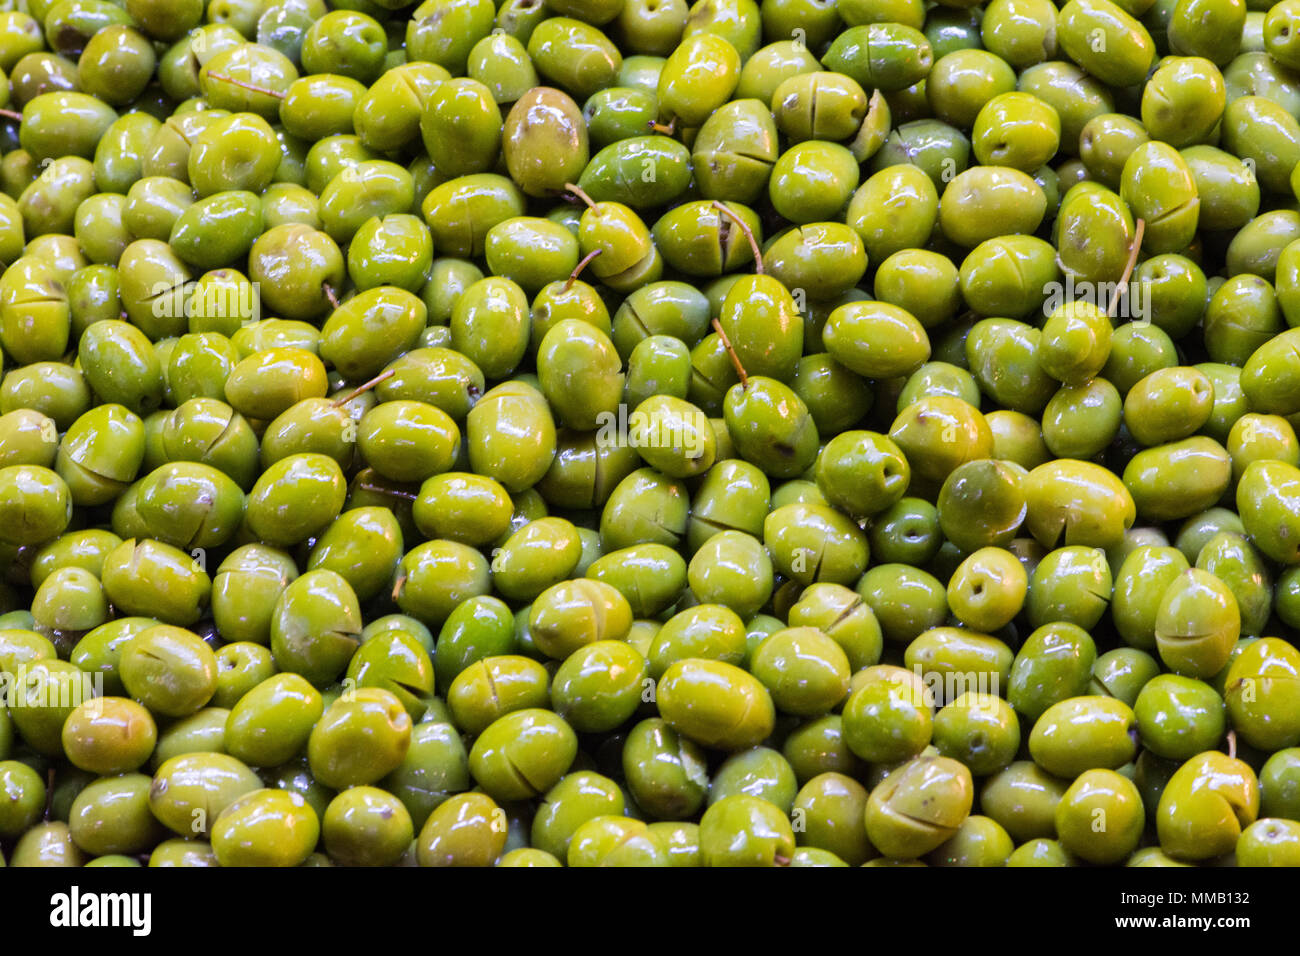 Pile of olives soaked in the water to keep them fresh for latre use - Stock Image